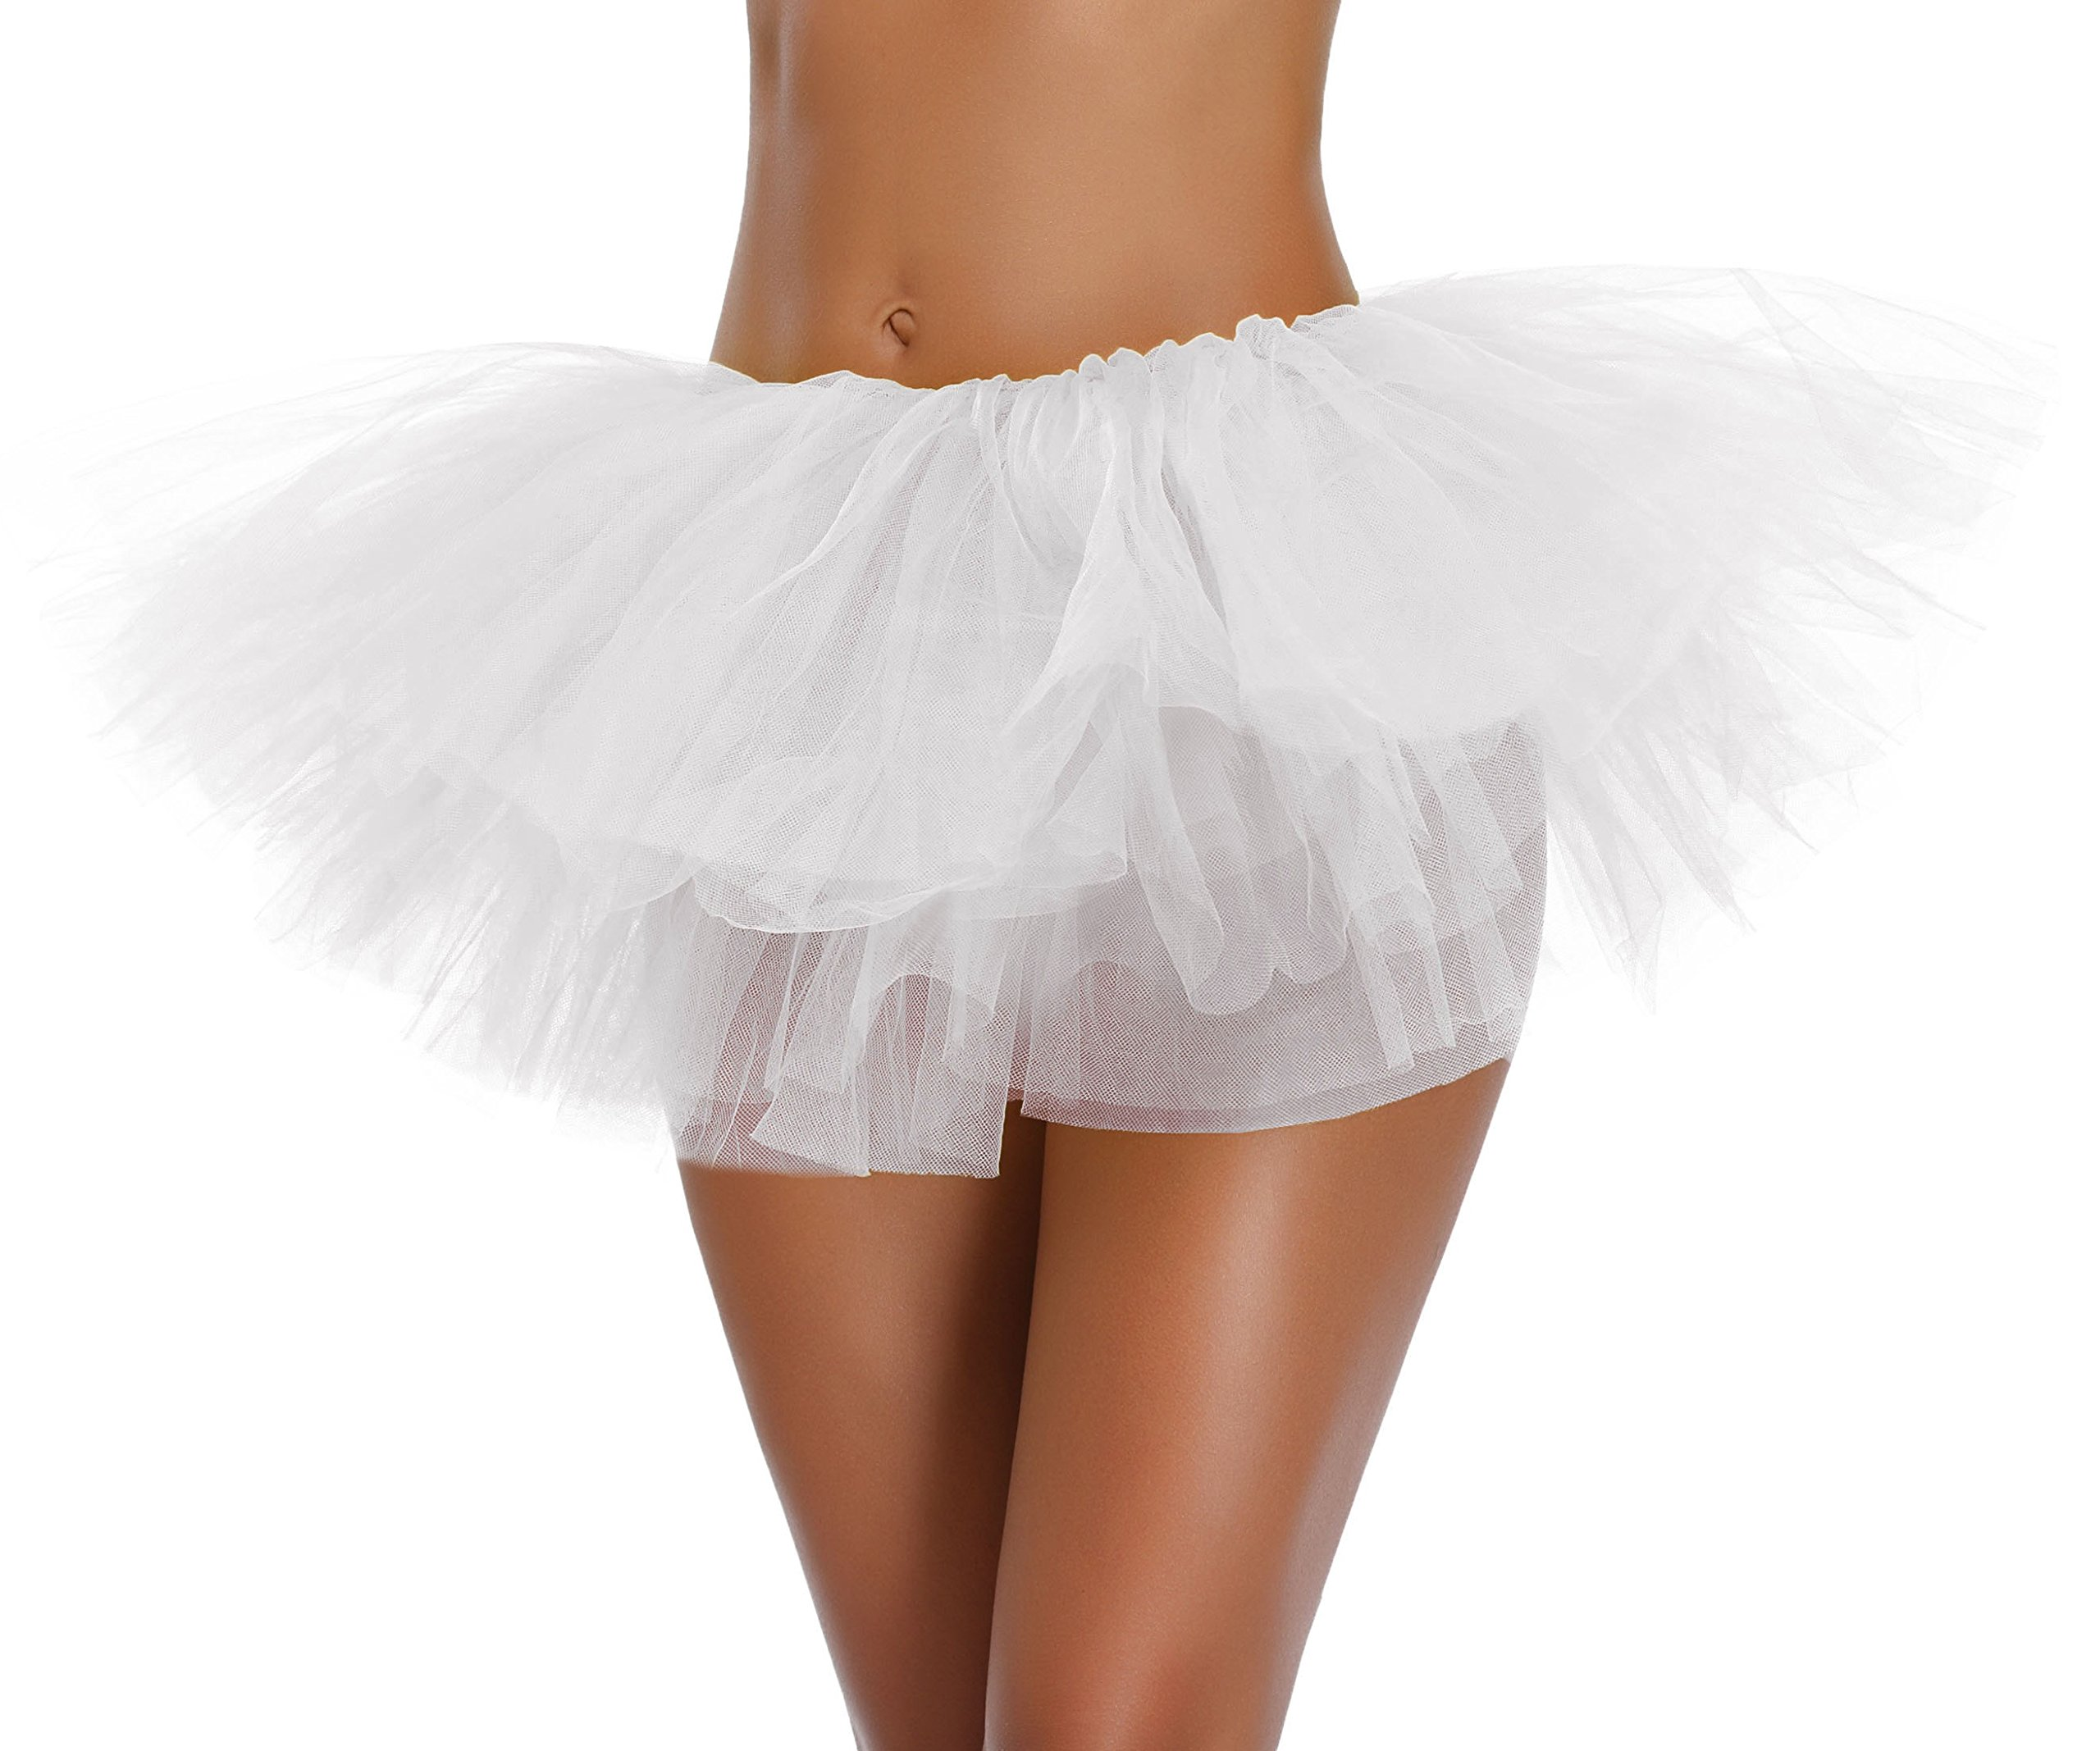 Women's, Teen, Adult Classic Elastic 3, 4, 5 Layered Tulle Tutu Skirt (One Size, White 5Layer)